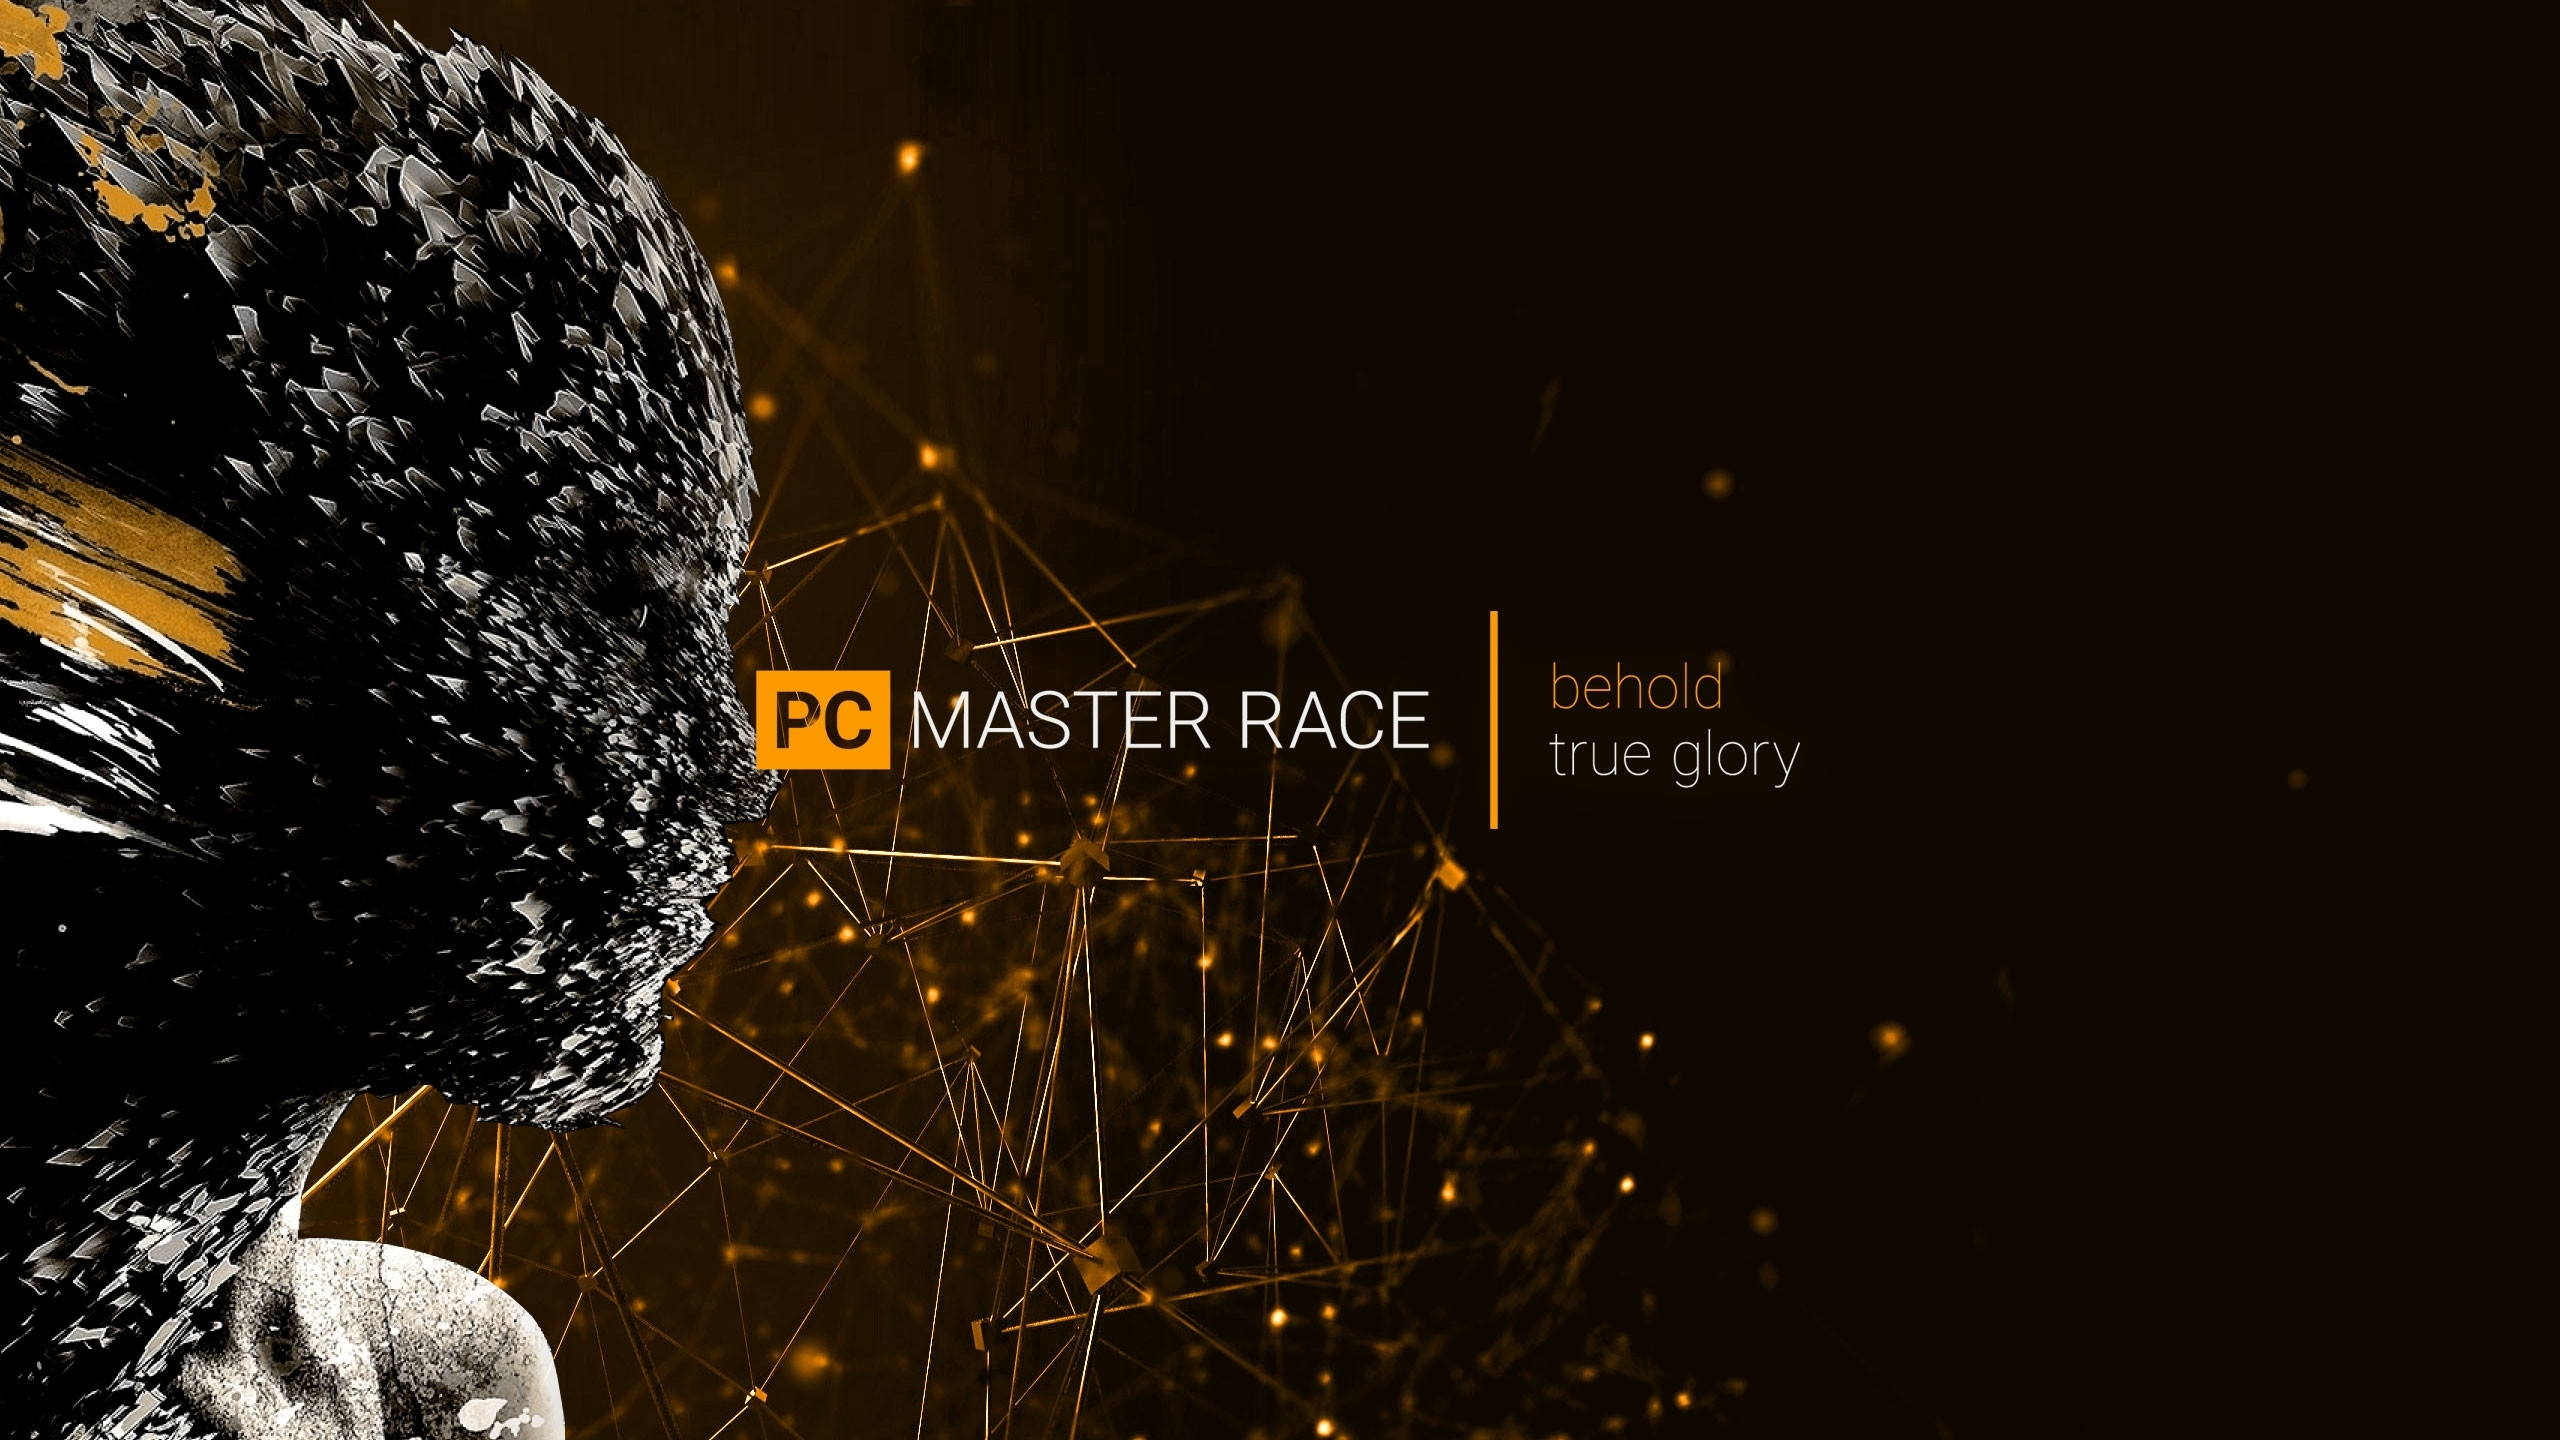 10 Best Pc Master Race Desktop Background FULL HD 1920×1080 For PC Desktop